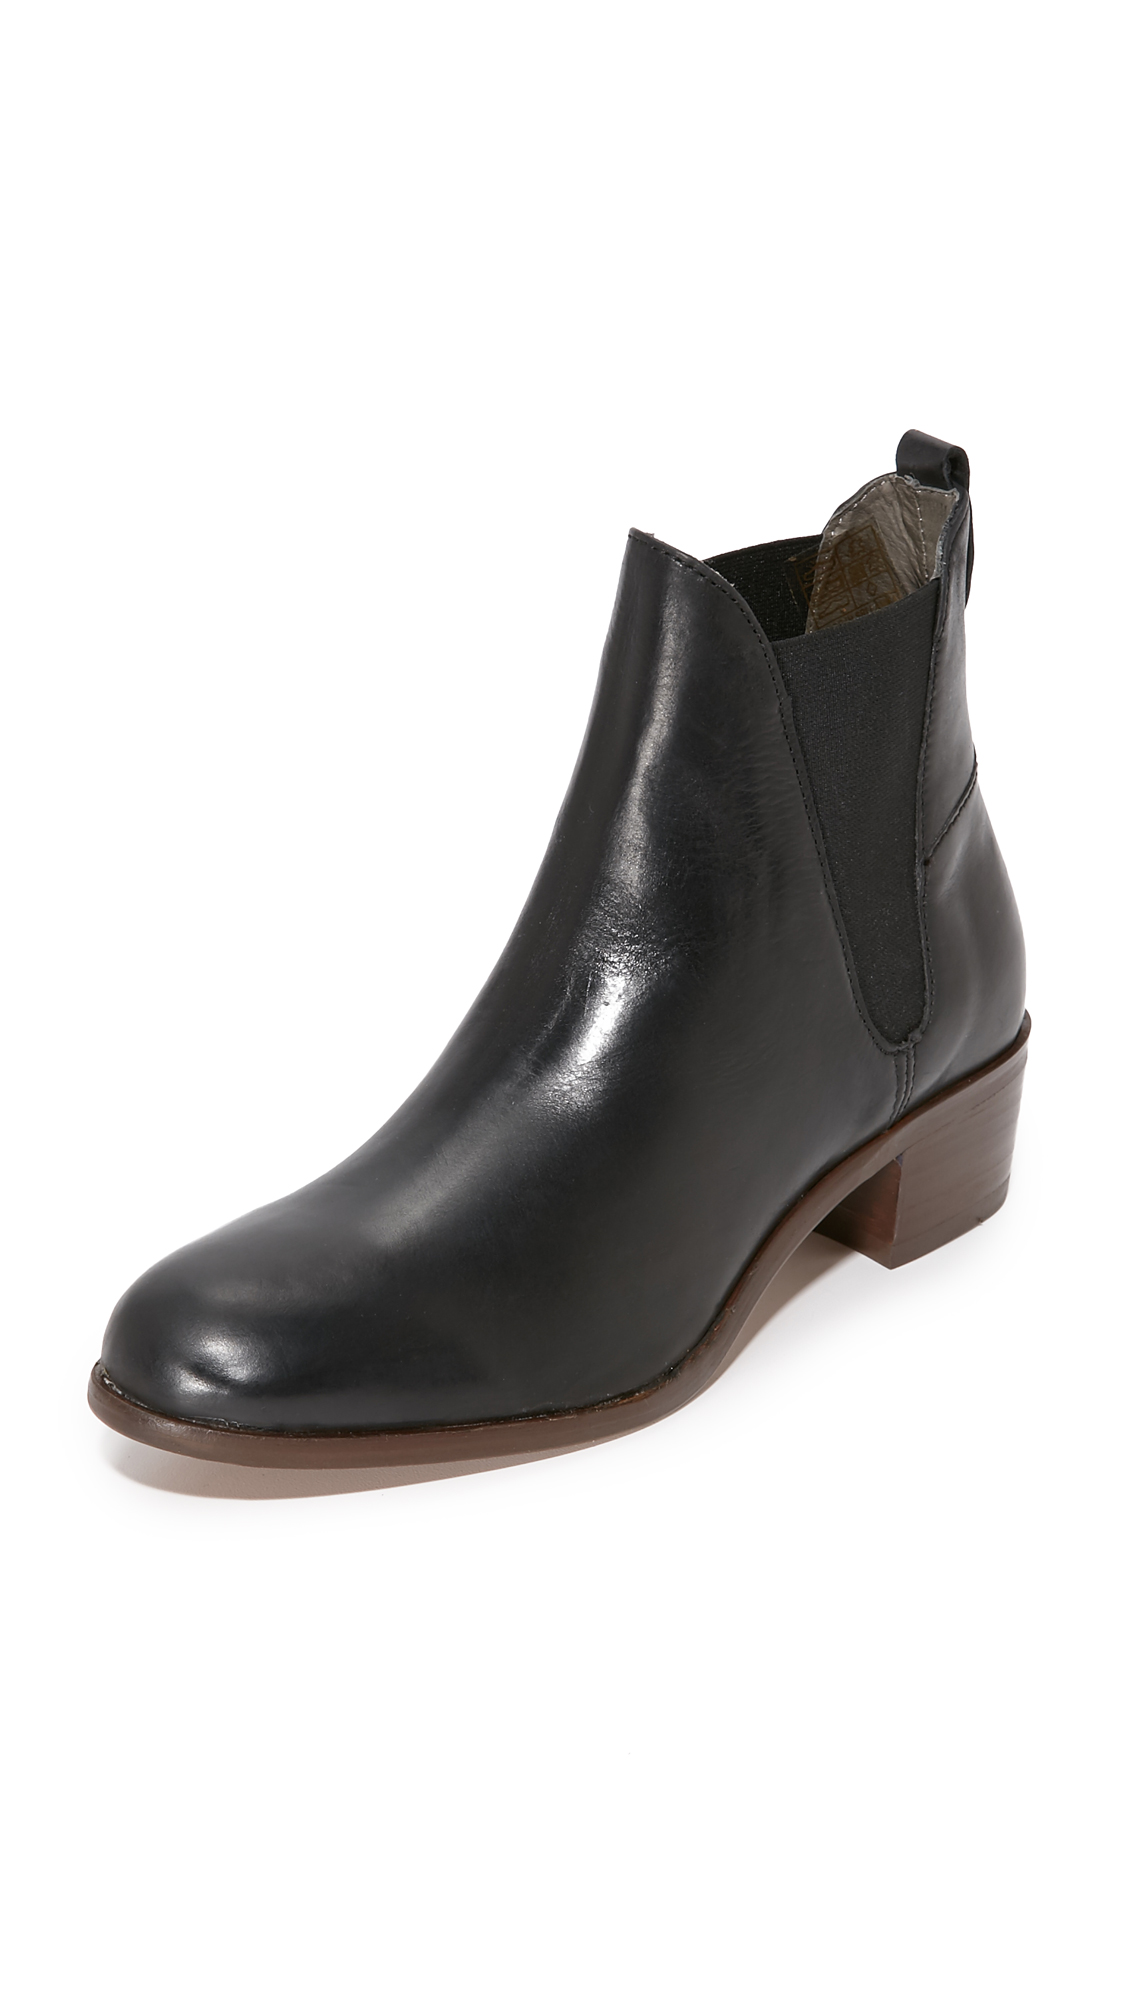 H By Hudson Compound Booties - Black